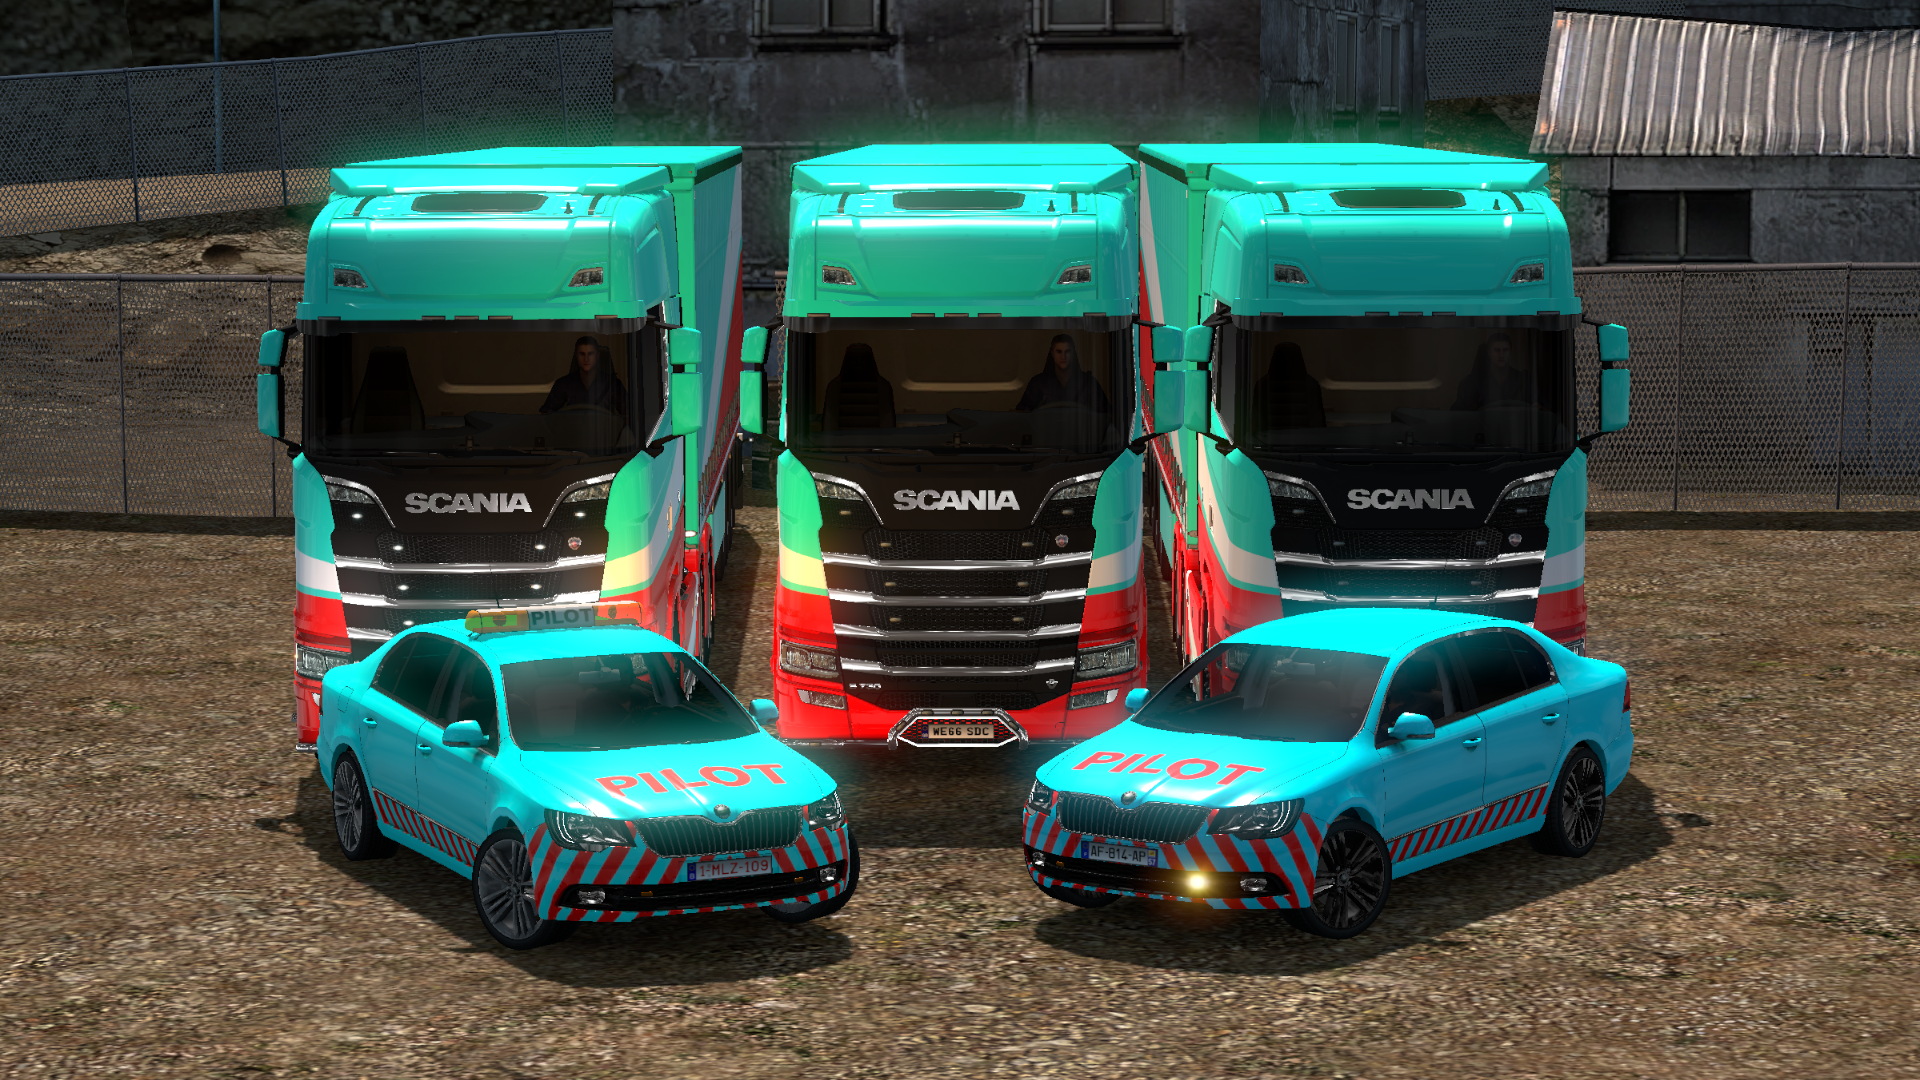 ets2_20190727_202834_00.png